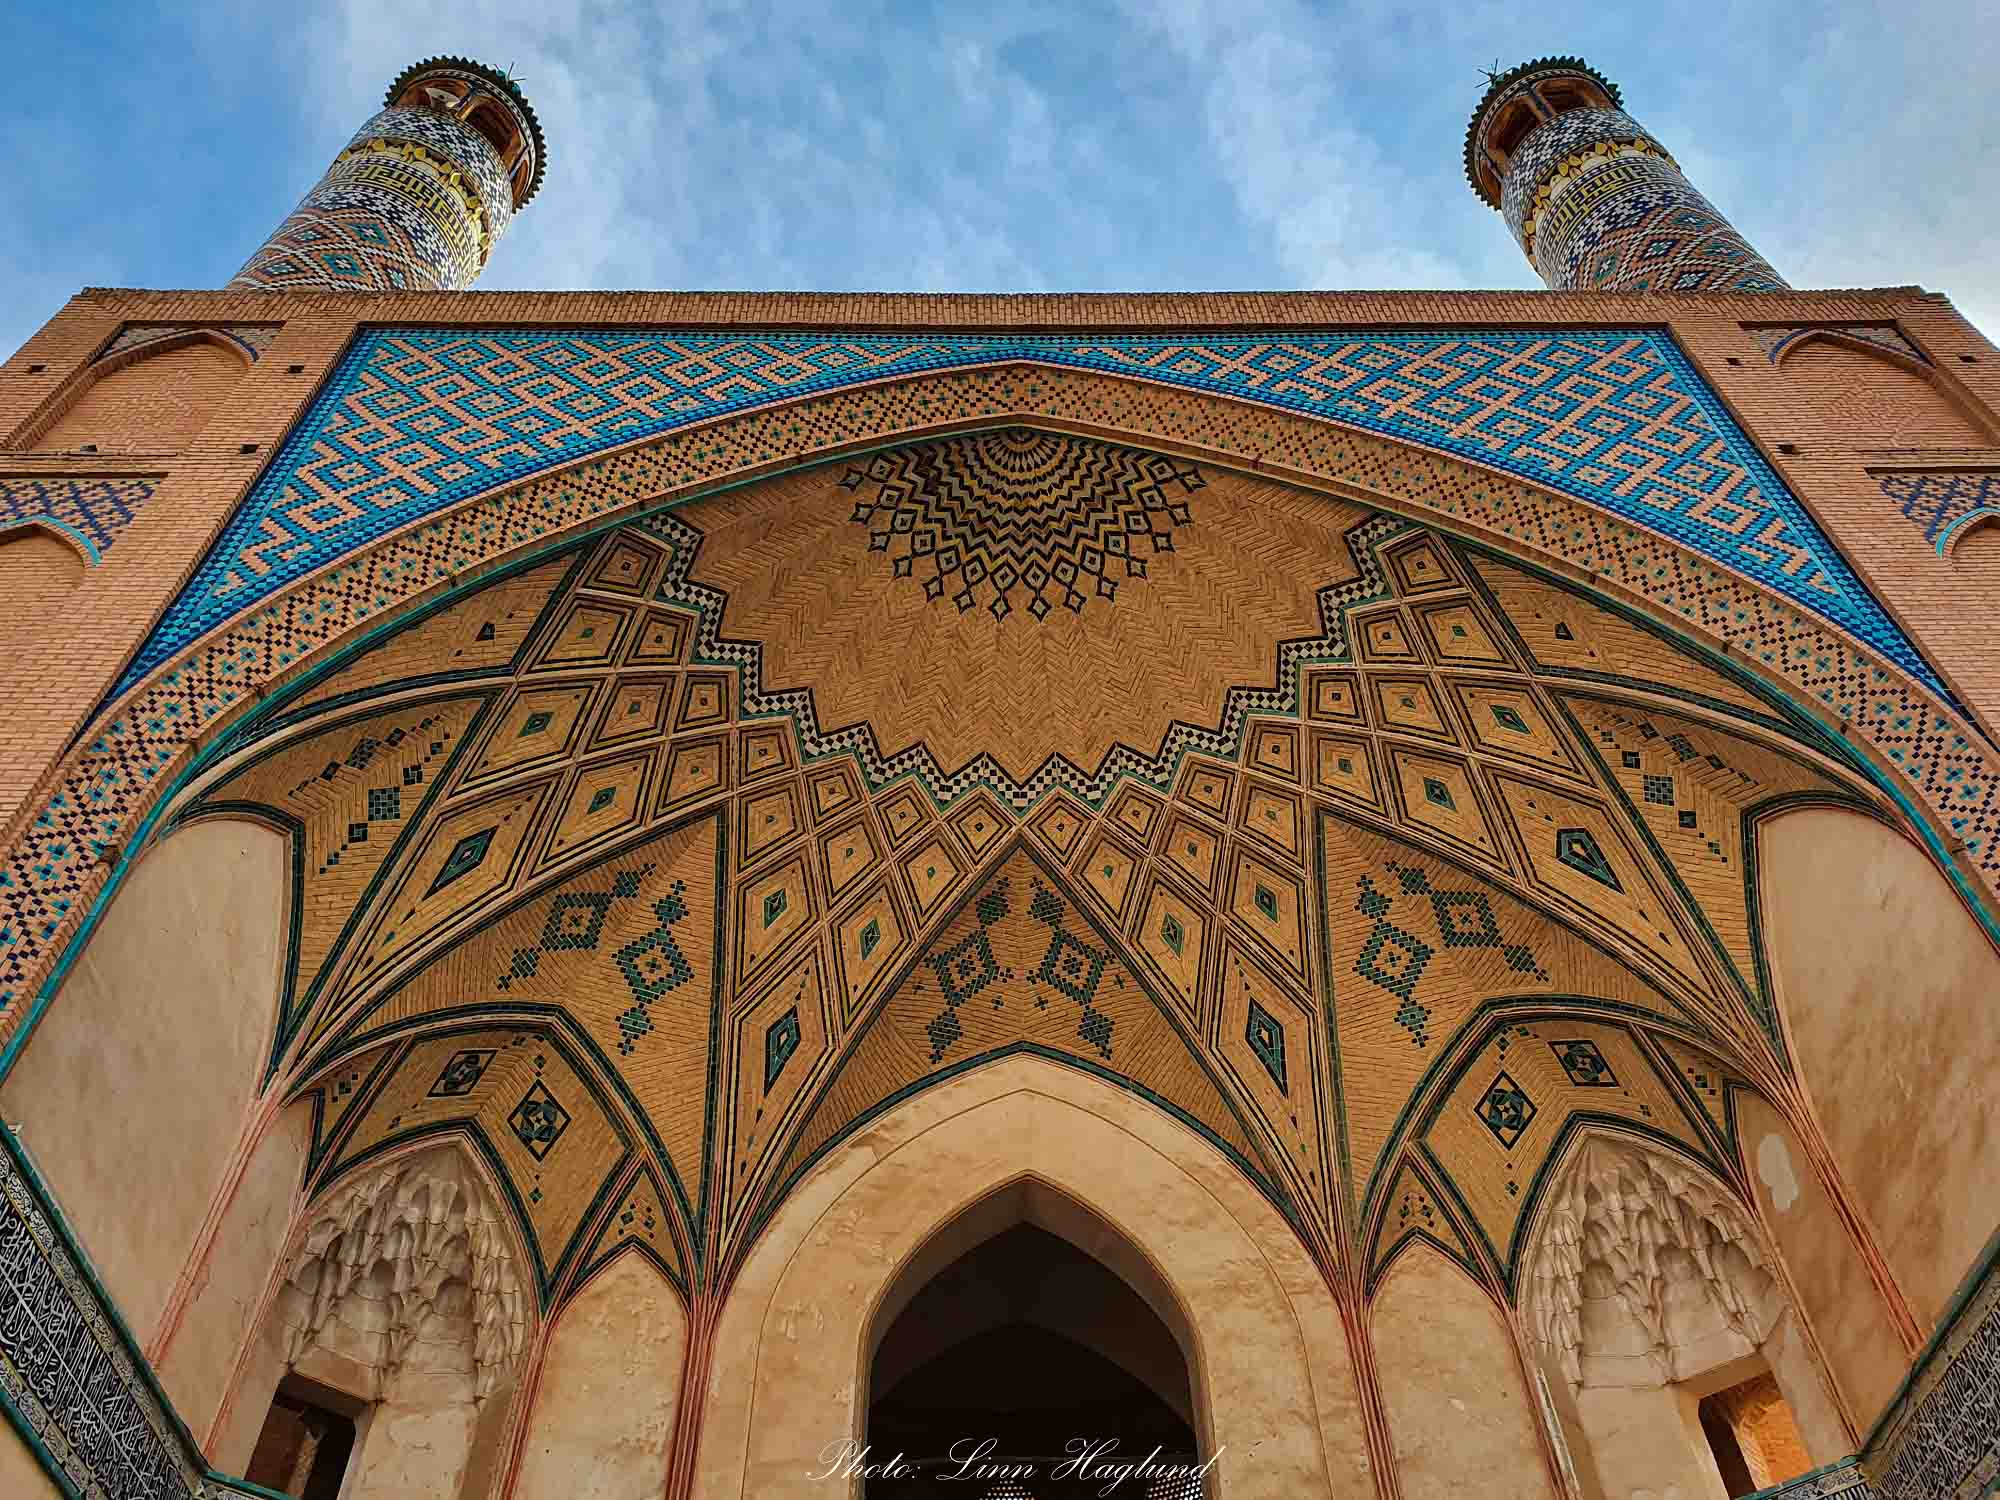 Agha Bozorg Mosque Kashan. Western & Central Asia's Most Walkable Cities